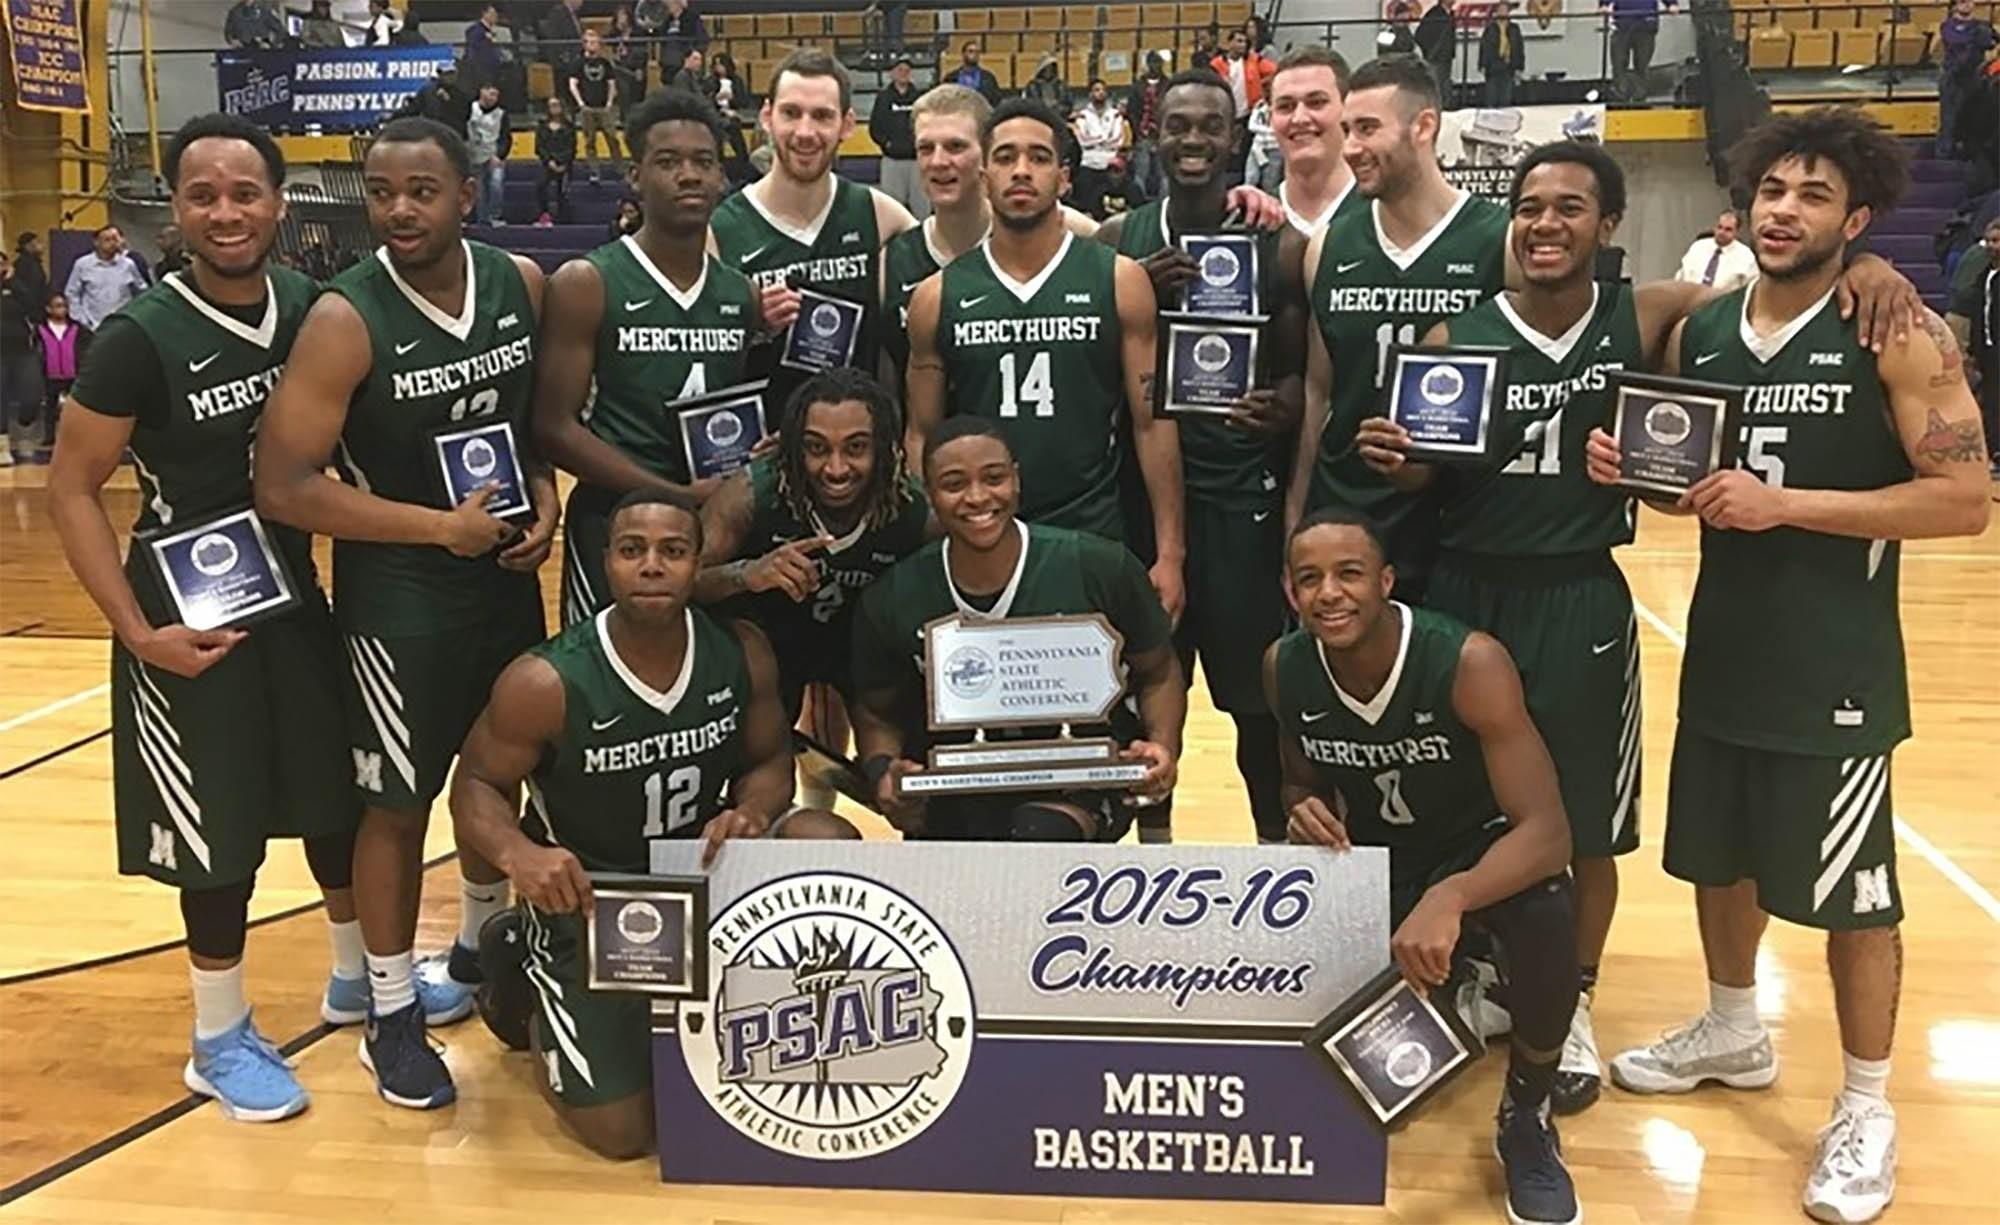 Men's basketball team wins 2015-2016 PSAC championship for the first time in its history on March 6